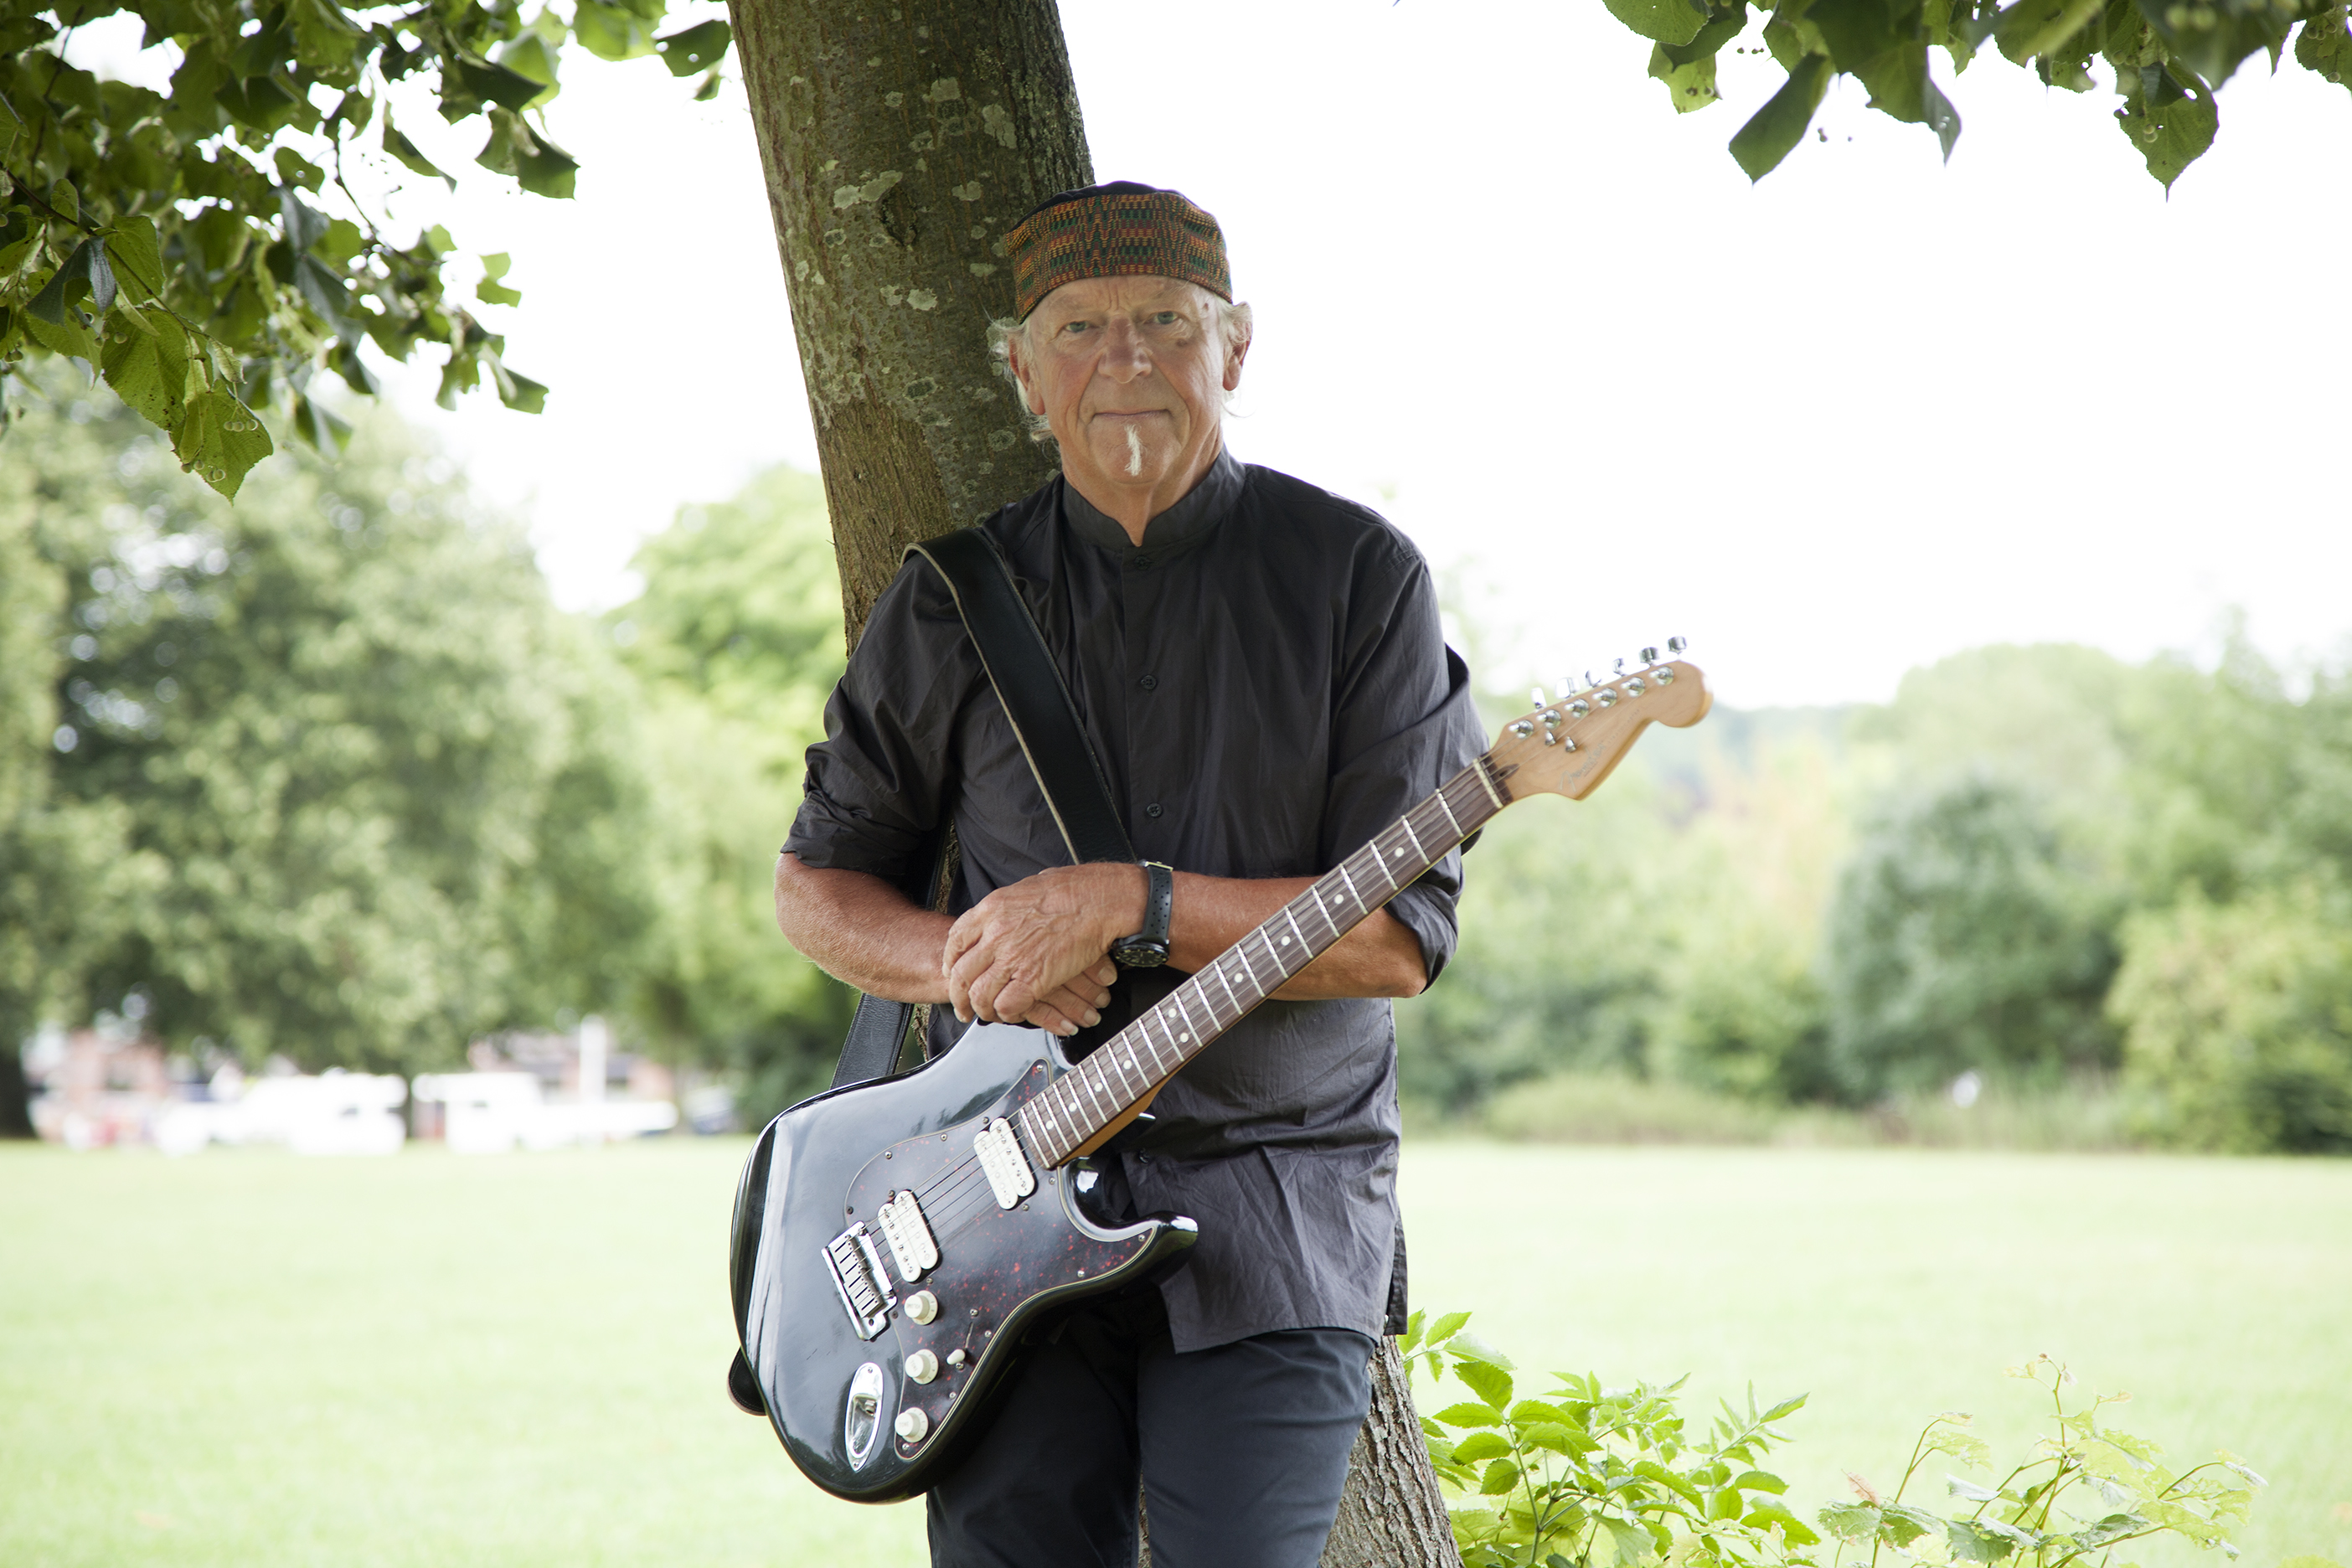 Martin Barre is set to hit the road in support of his upcoming album, 'Roads Less Travelled'.